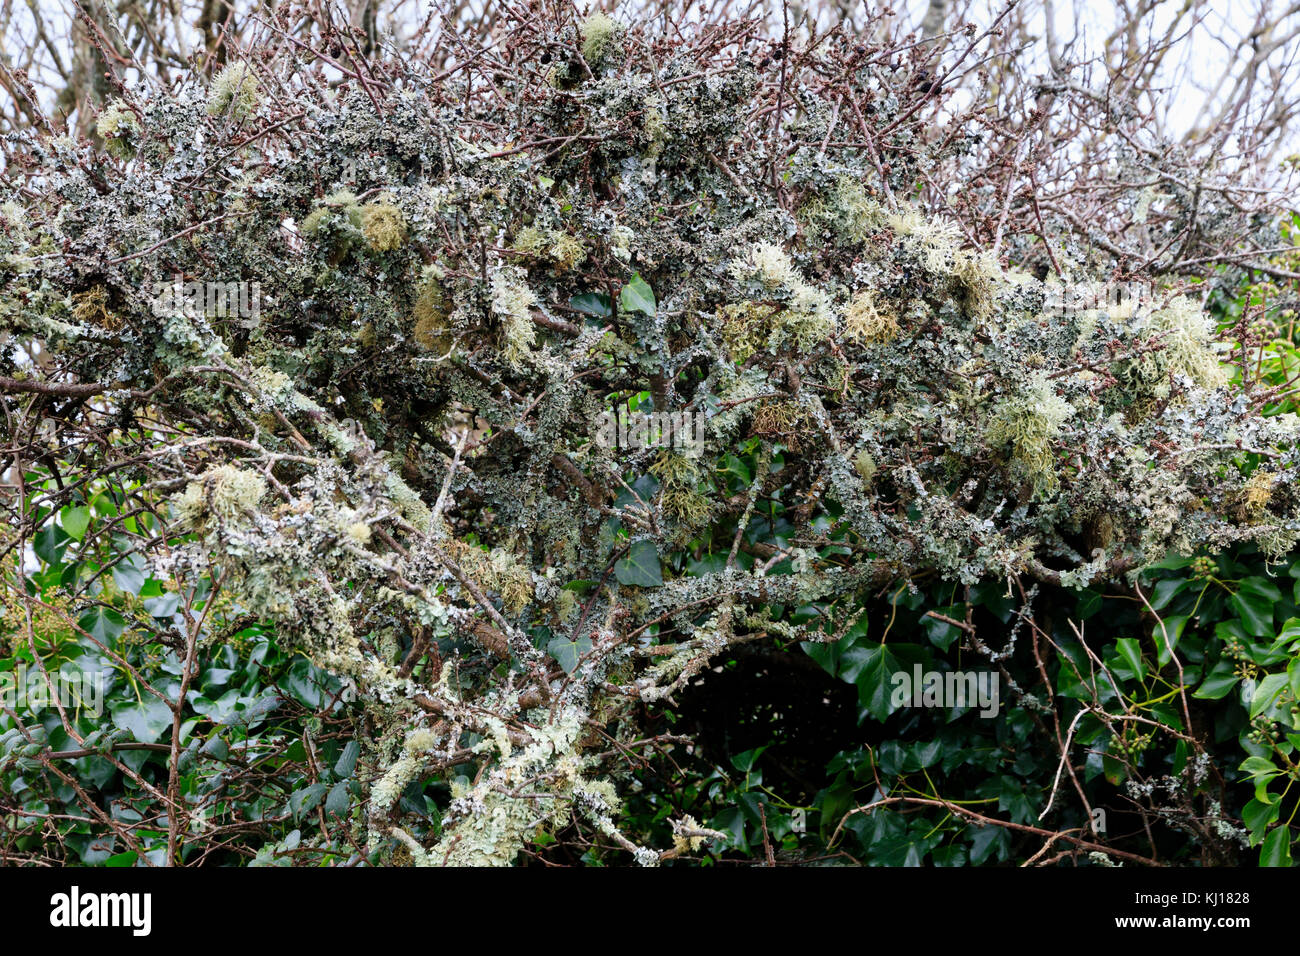 Heavily lichen encrusted branches of a blackthorn shrub in a South Devon hedgerow testify to the clean air of the - Stock Image